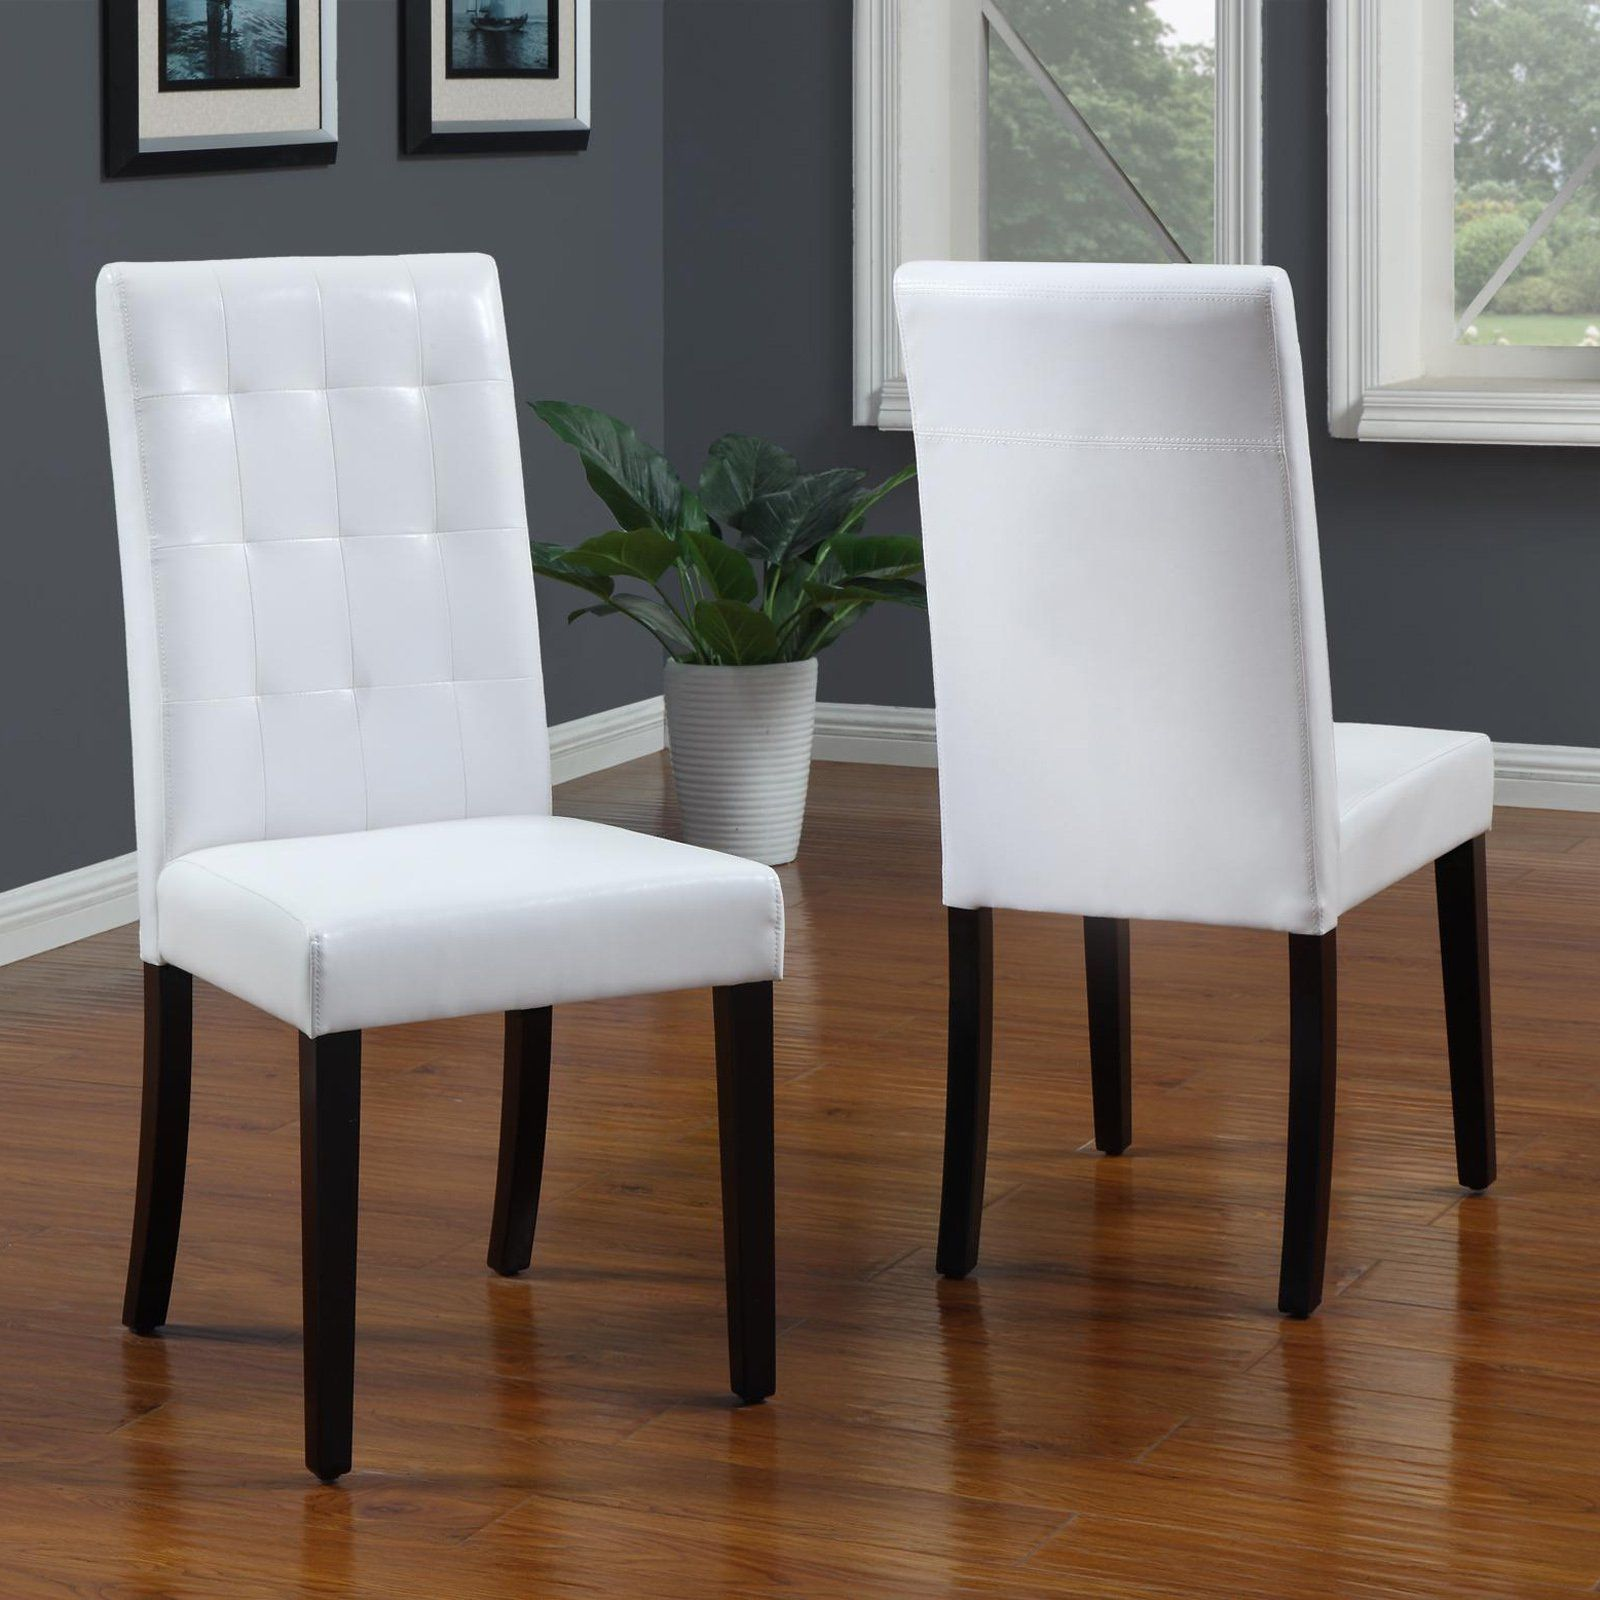 White Leather Dining Room Chairs White Leather Dining Room Chairs